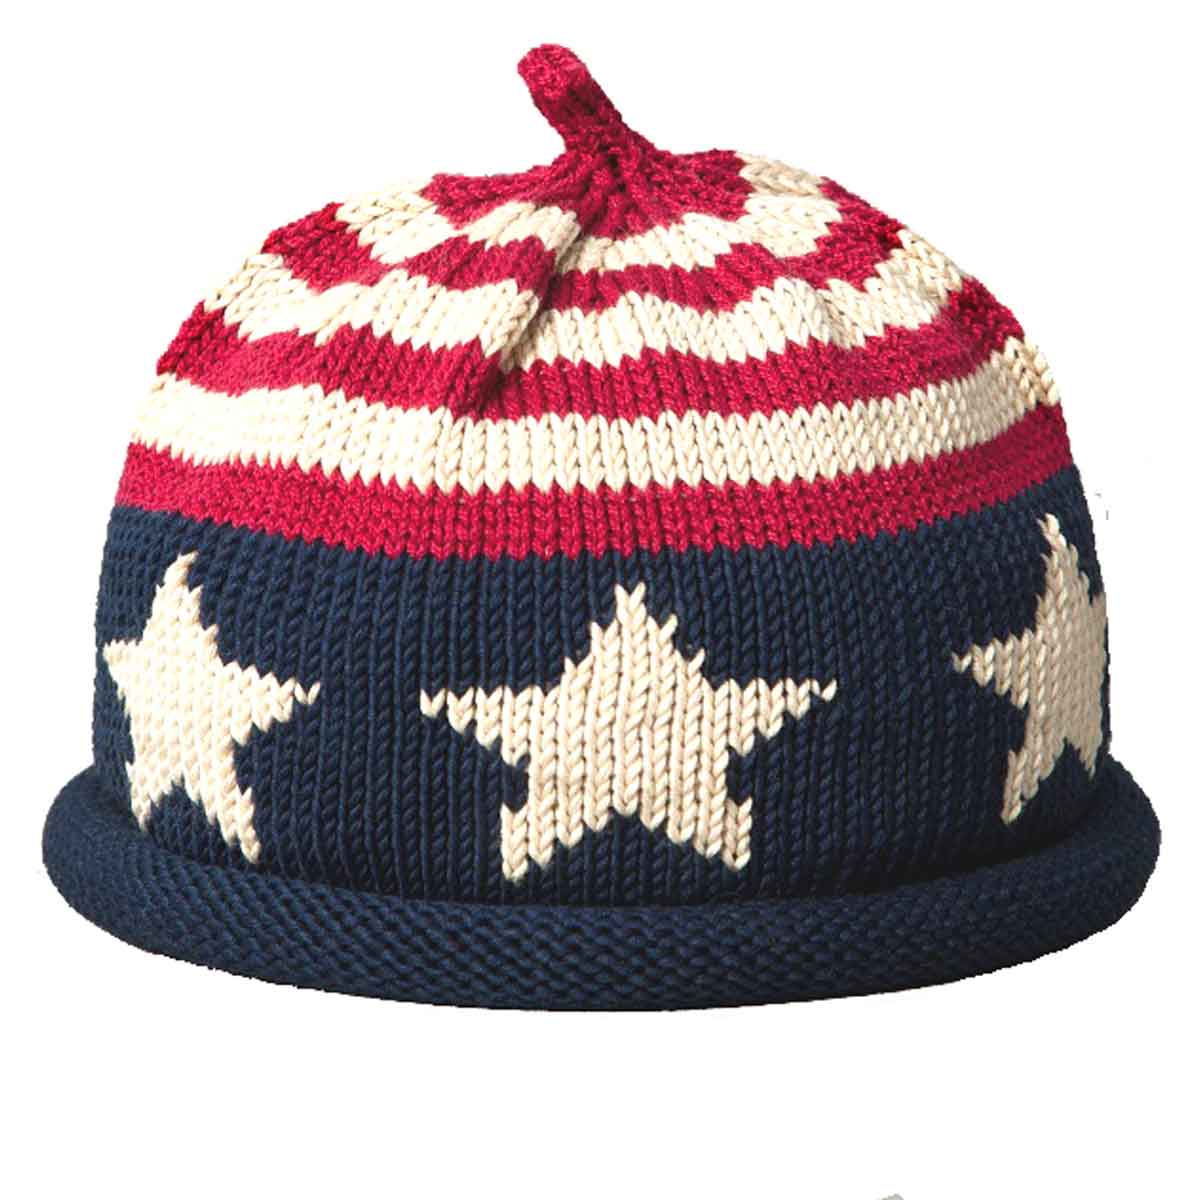 71b8892dd21 Knit hat with rolled brim with USA flag motif. The crown is red and white